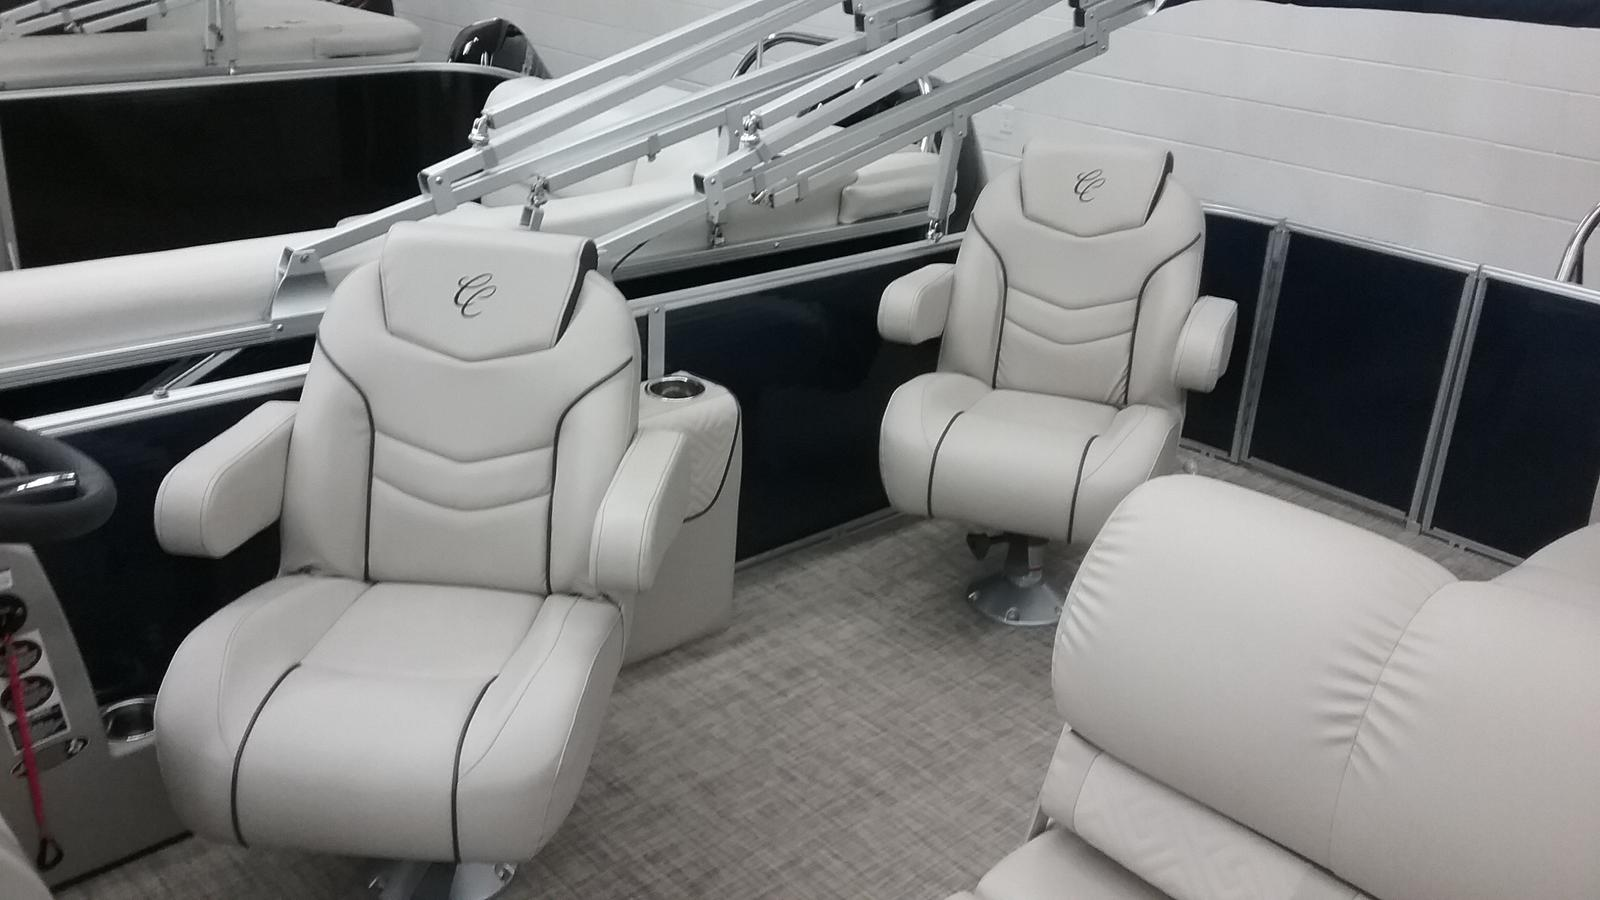 2019 Cypress Cay boat for sale, model of the boat is 233 Sea Breeze SLP & Image # 2 of 5